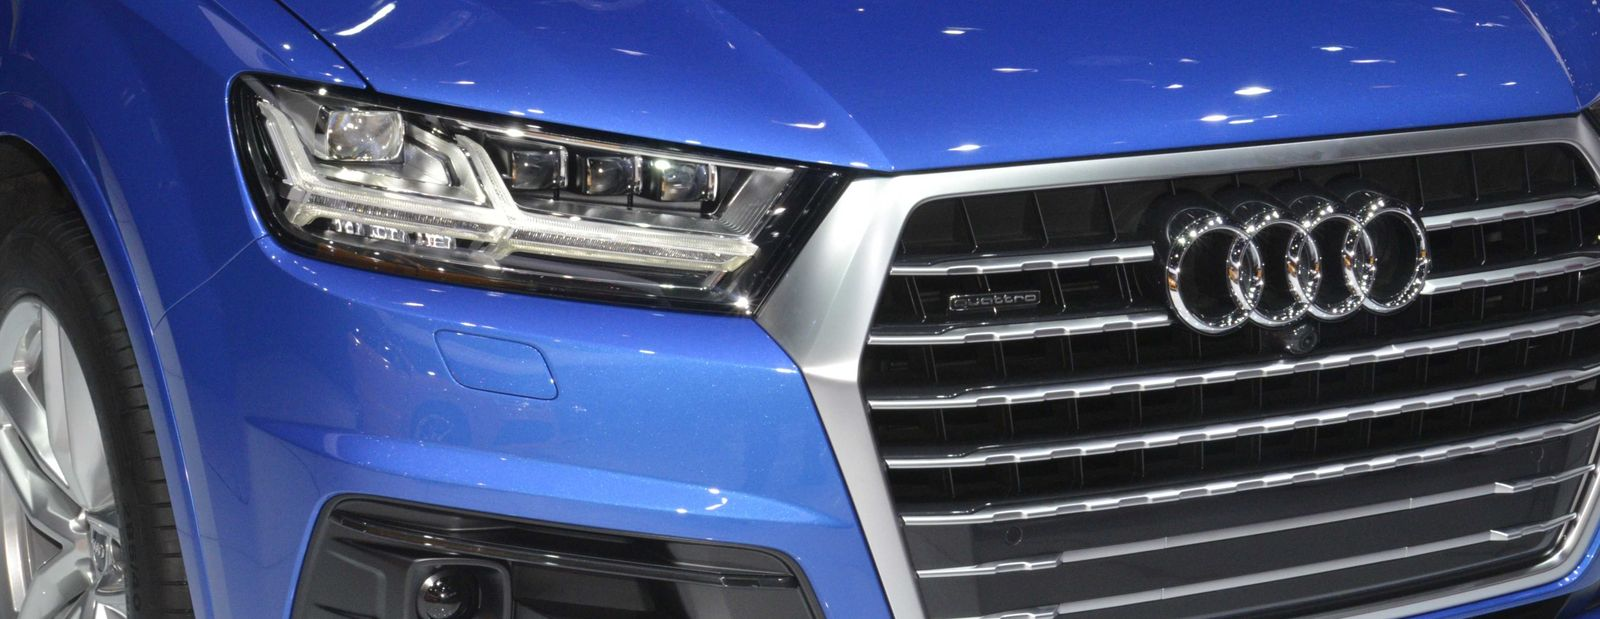 Guide To Choosing The Right Car Paint Type Material